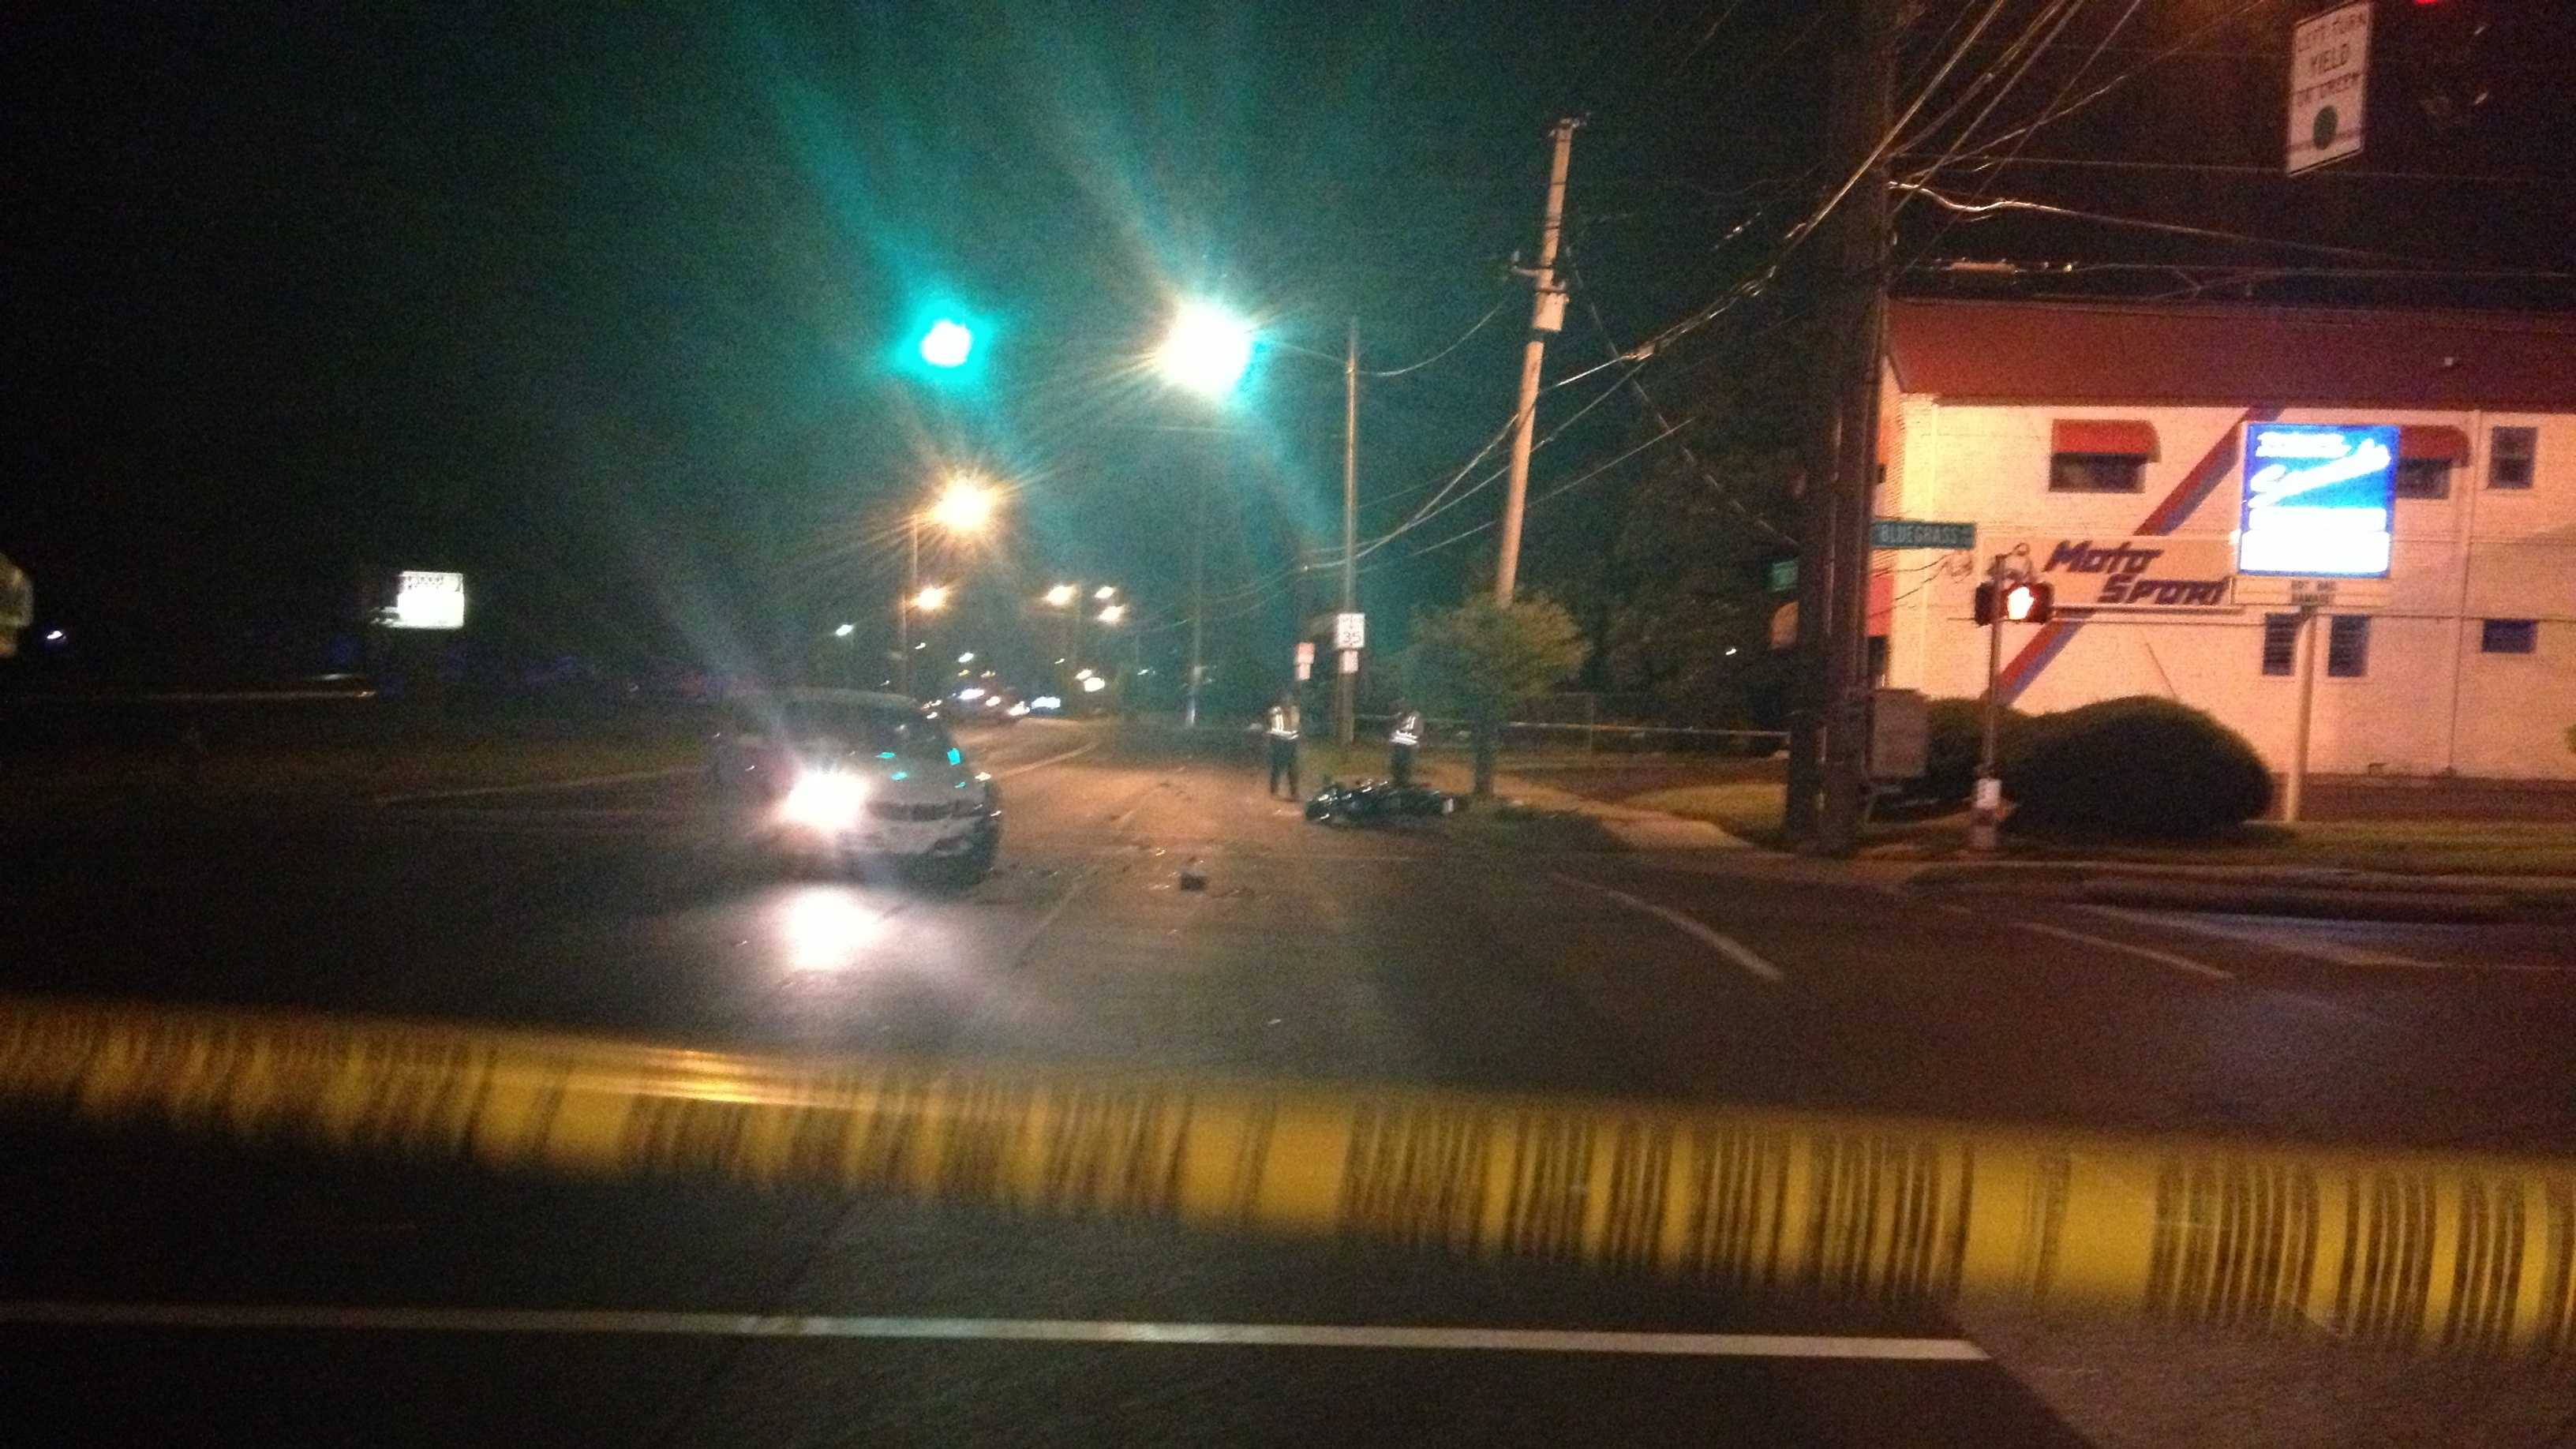 A woman was killed after the motorcycle she was riding on was hit by a car.